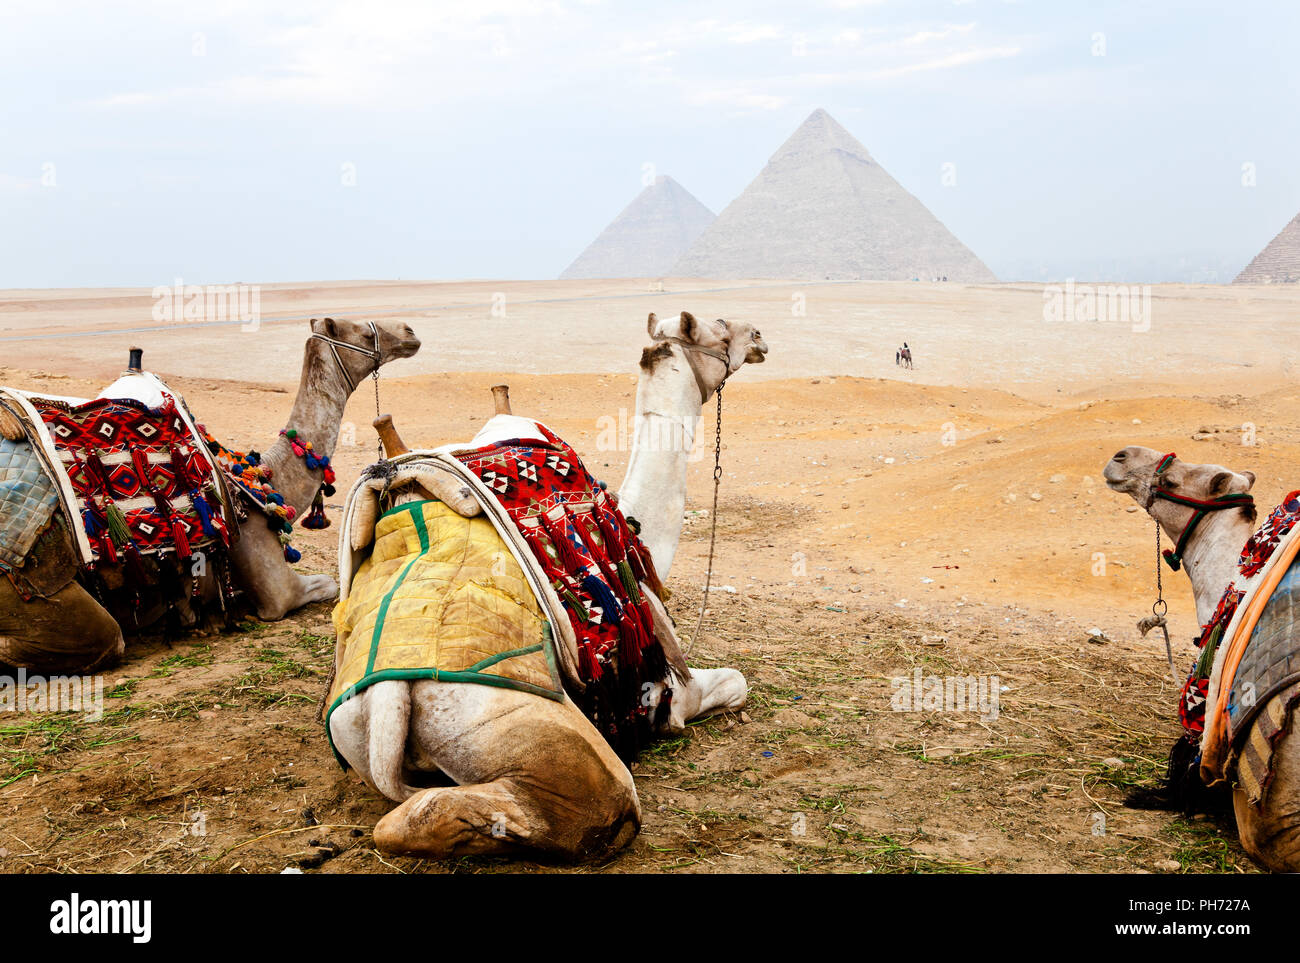 Three camels and the pyramids of giza - Stock Image